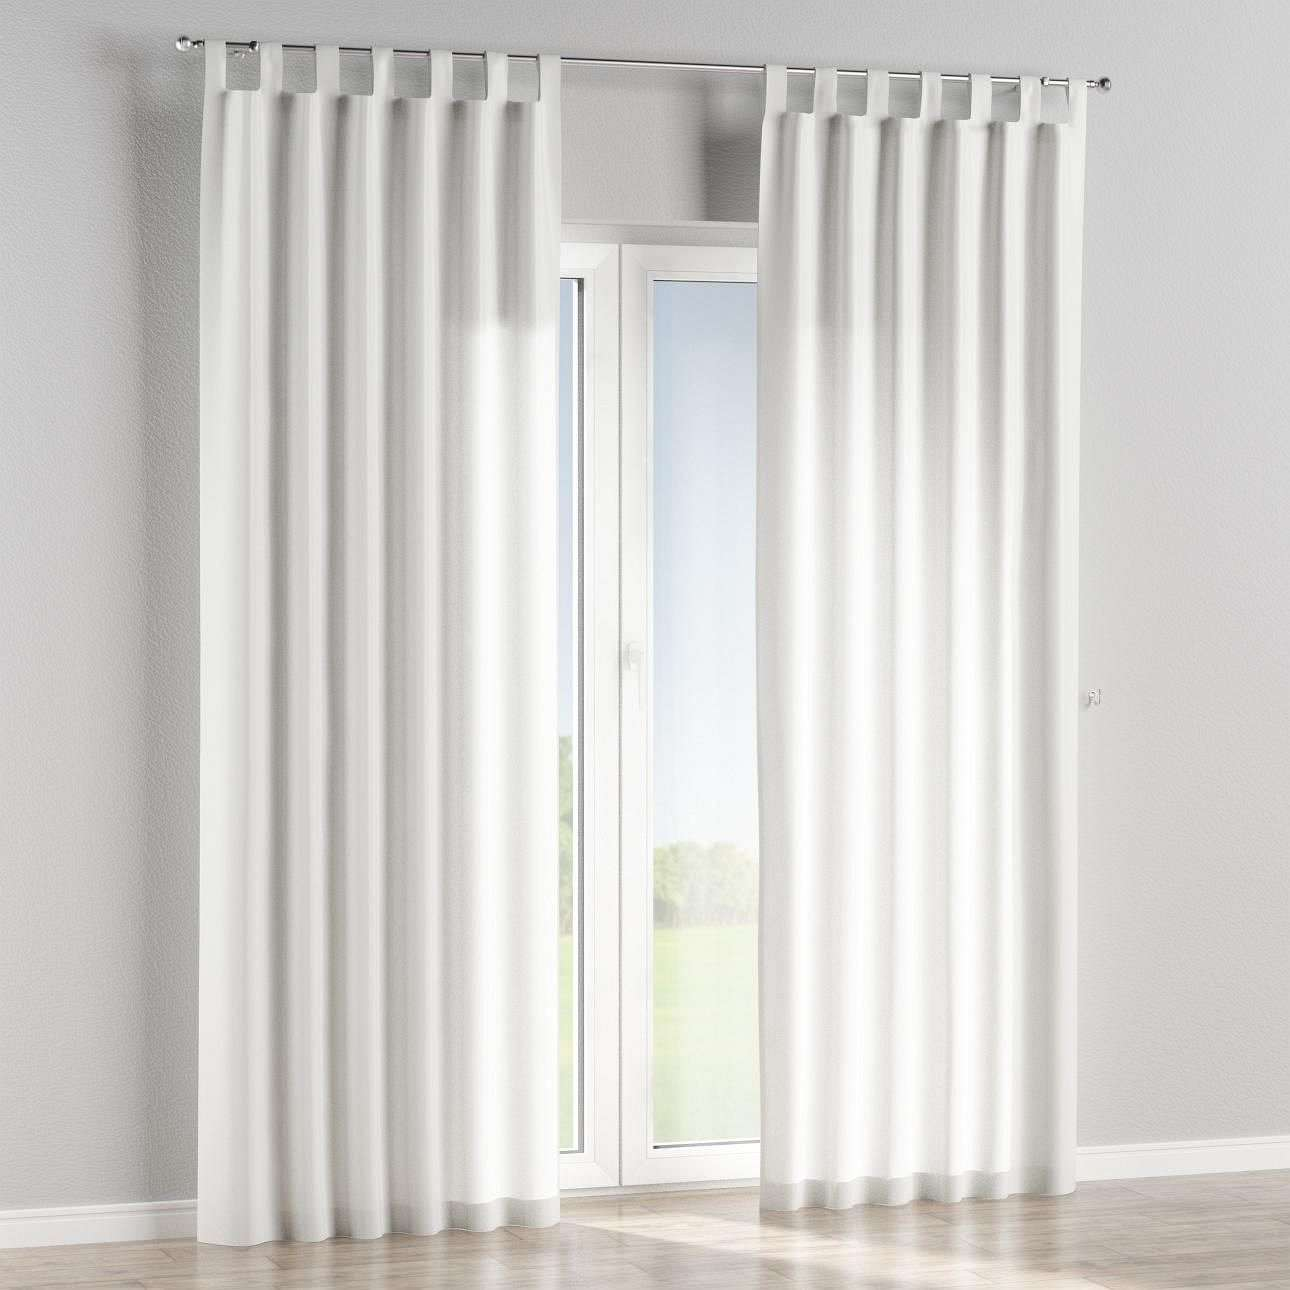 Tab top lined curtains in collection Rustica, fabric: 138-25